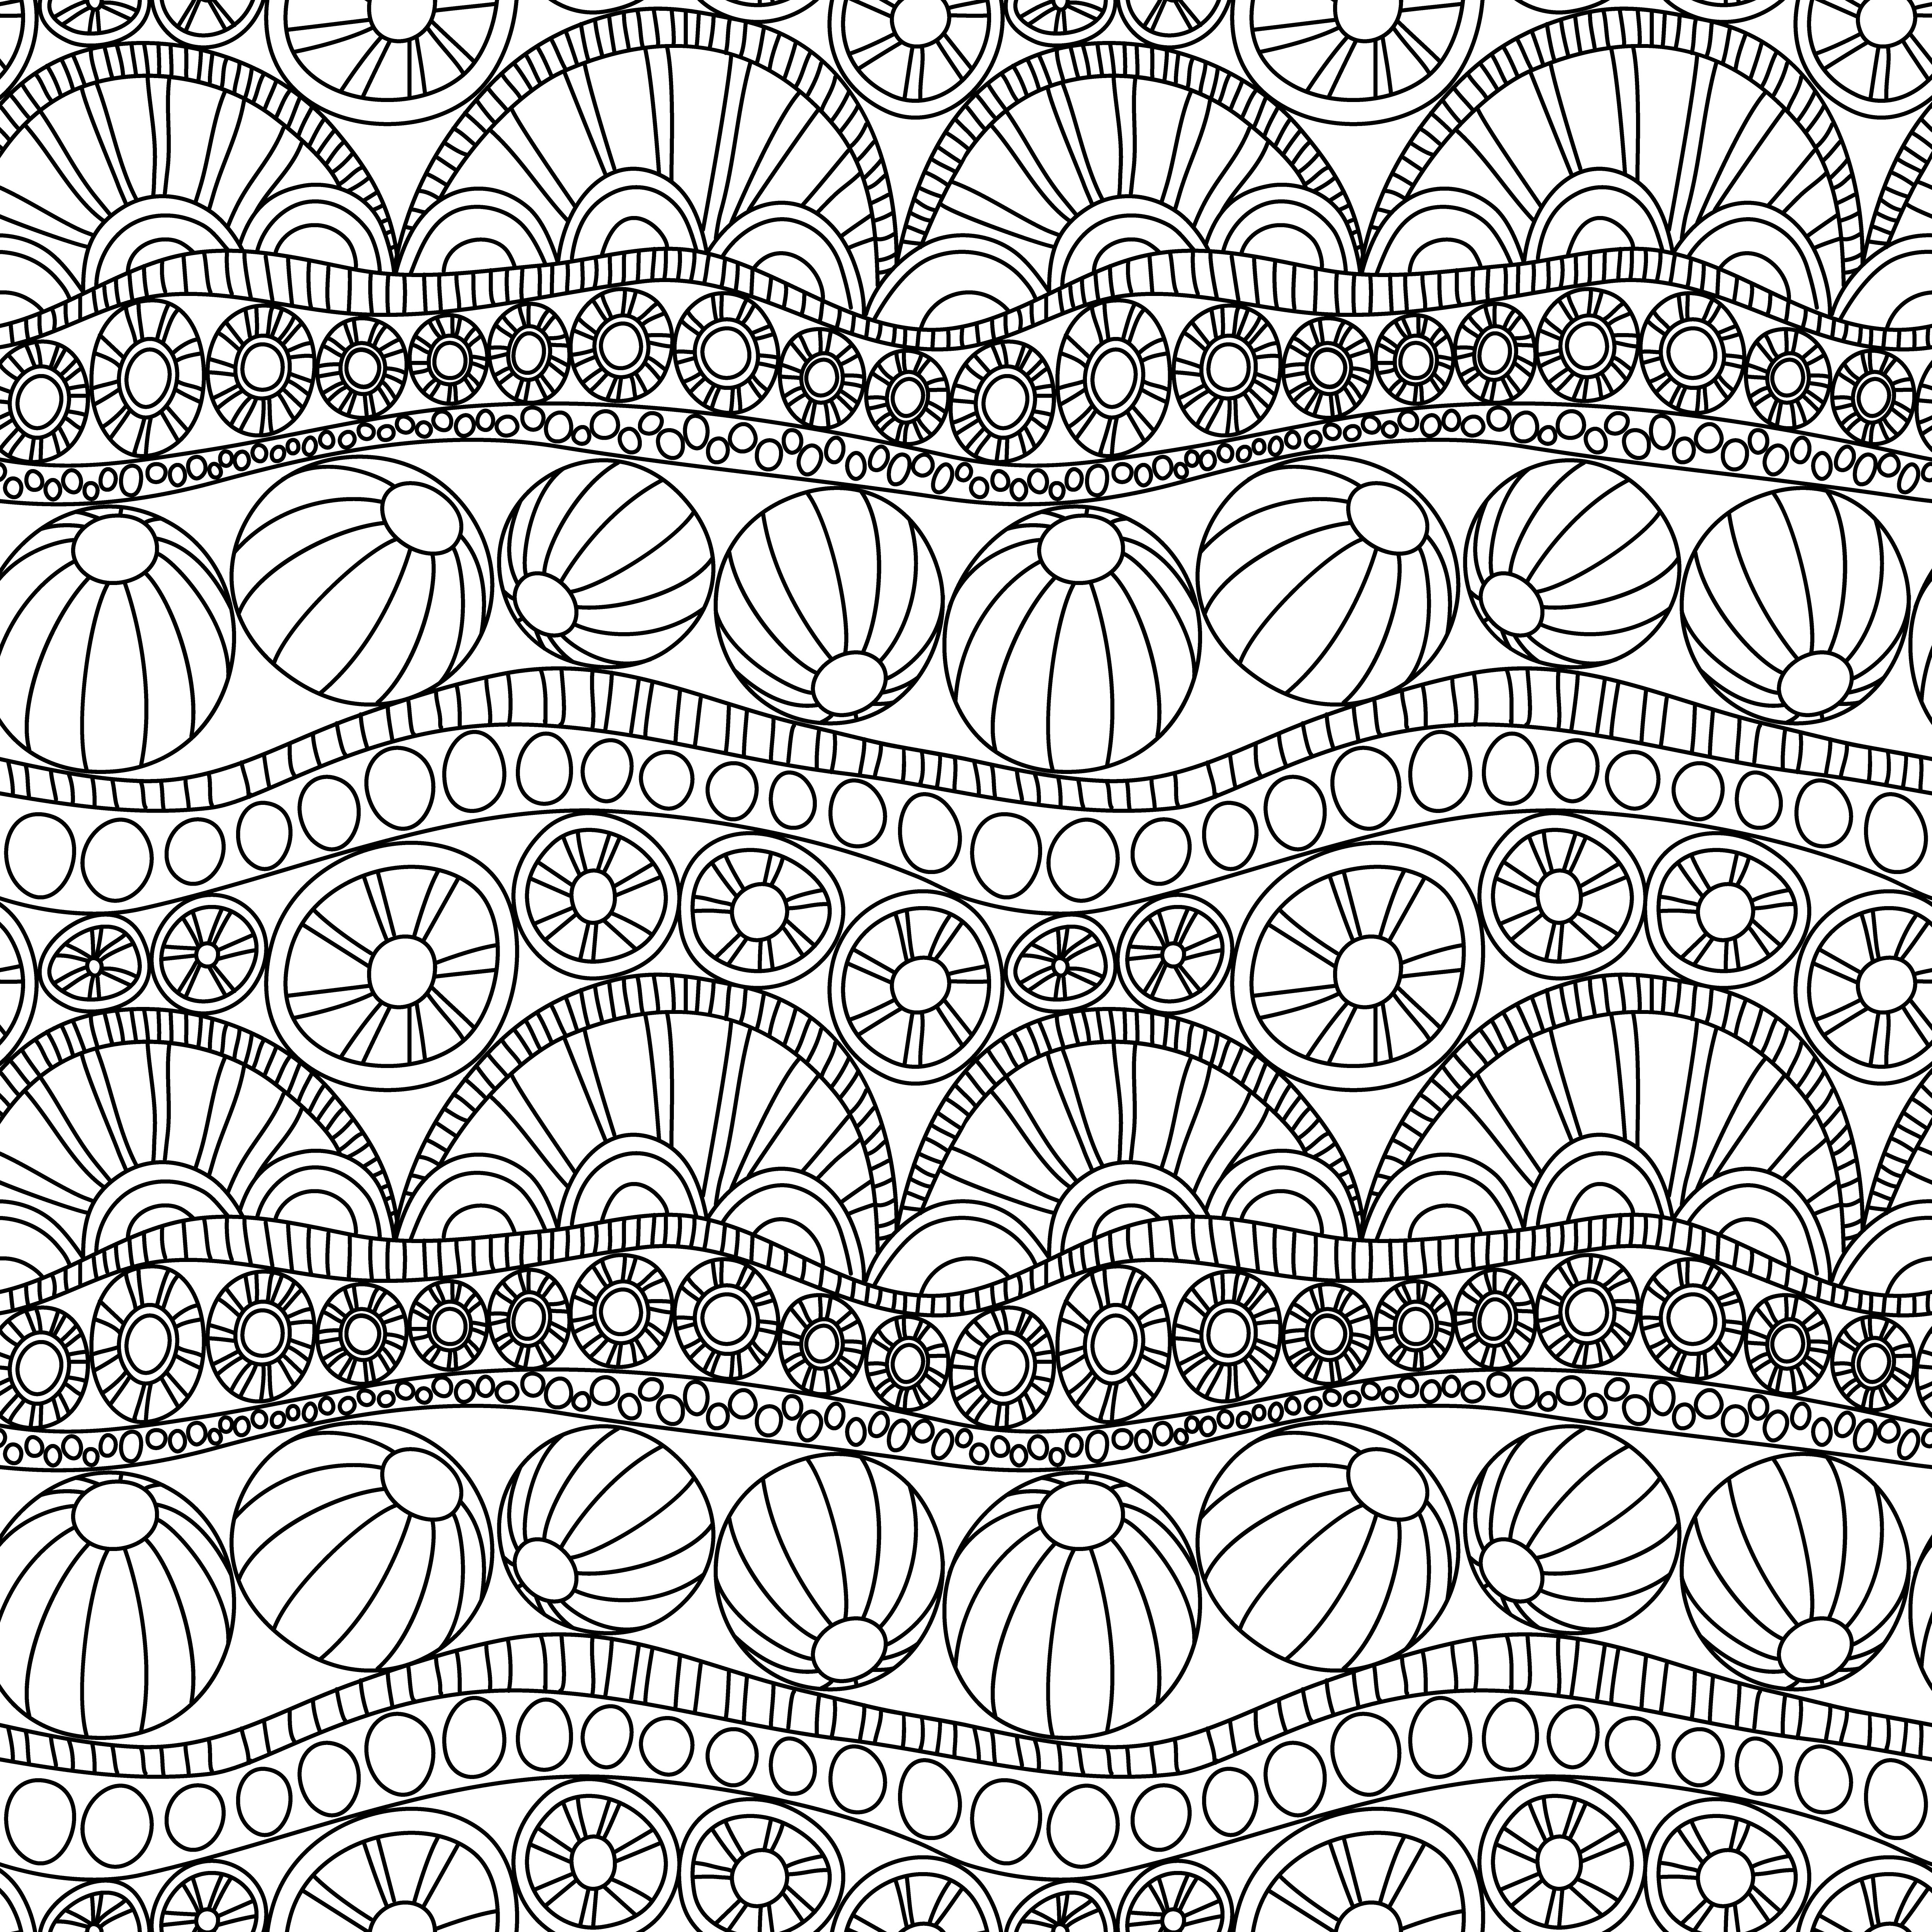 design art coloring pages free printable geometric coloring pages for kids design pages coloring art